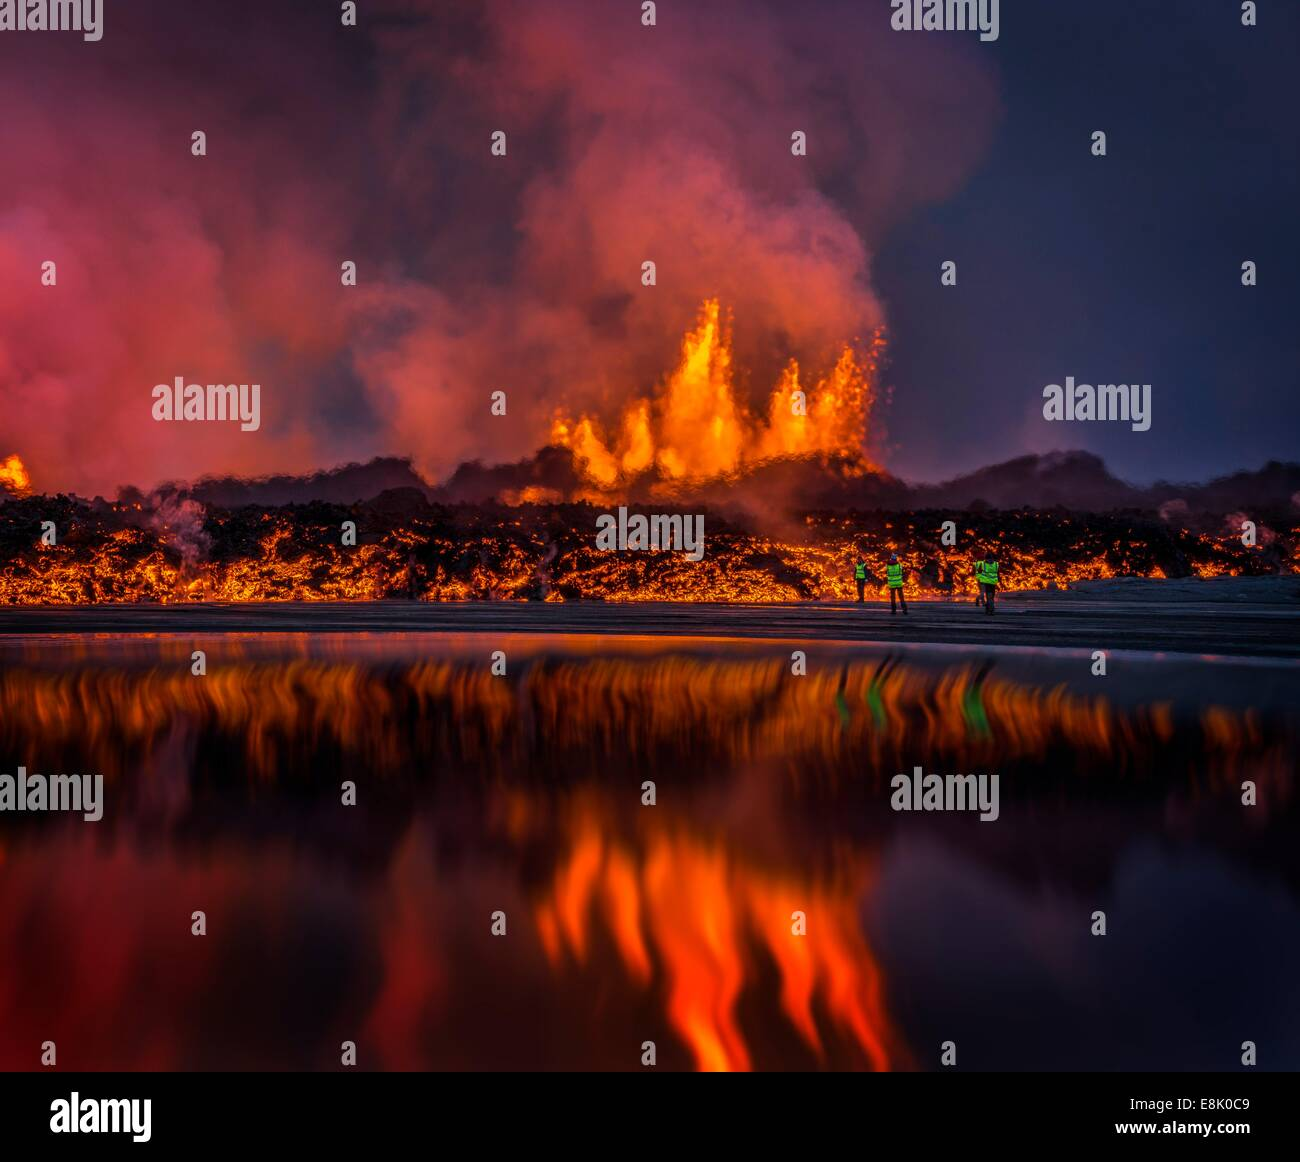 Glowing lava from the eruption at the Holuhraun Fissure, near the the Bardarbunga Volcano, Iceland. - Stock Image